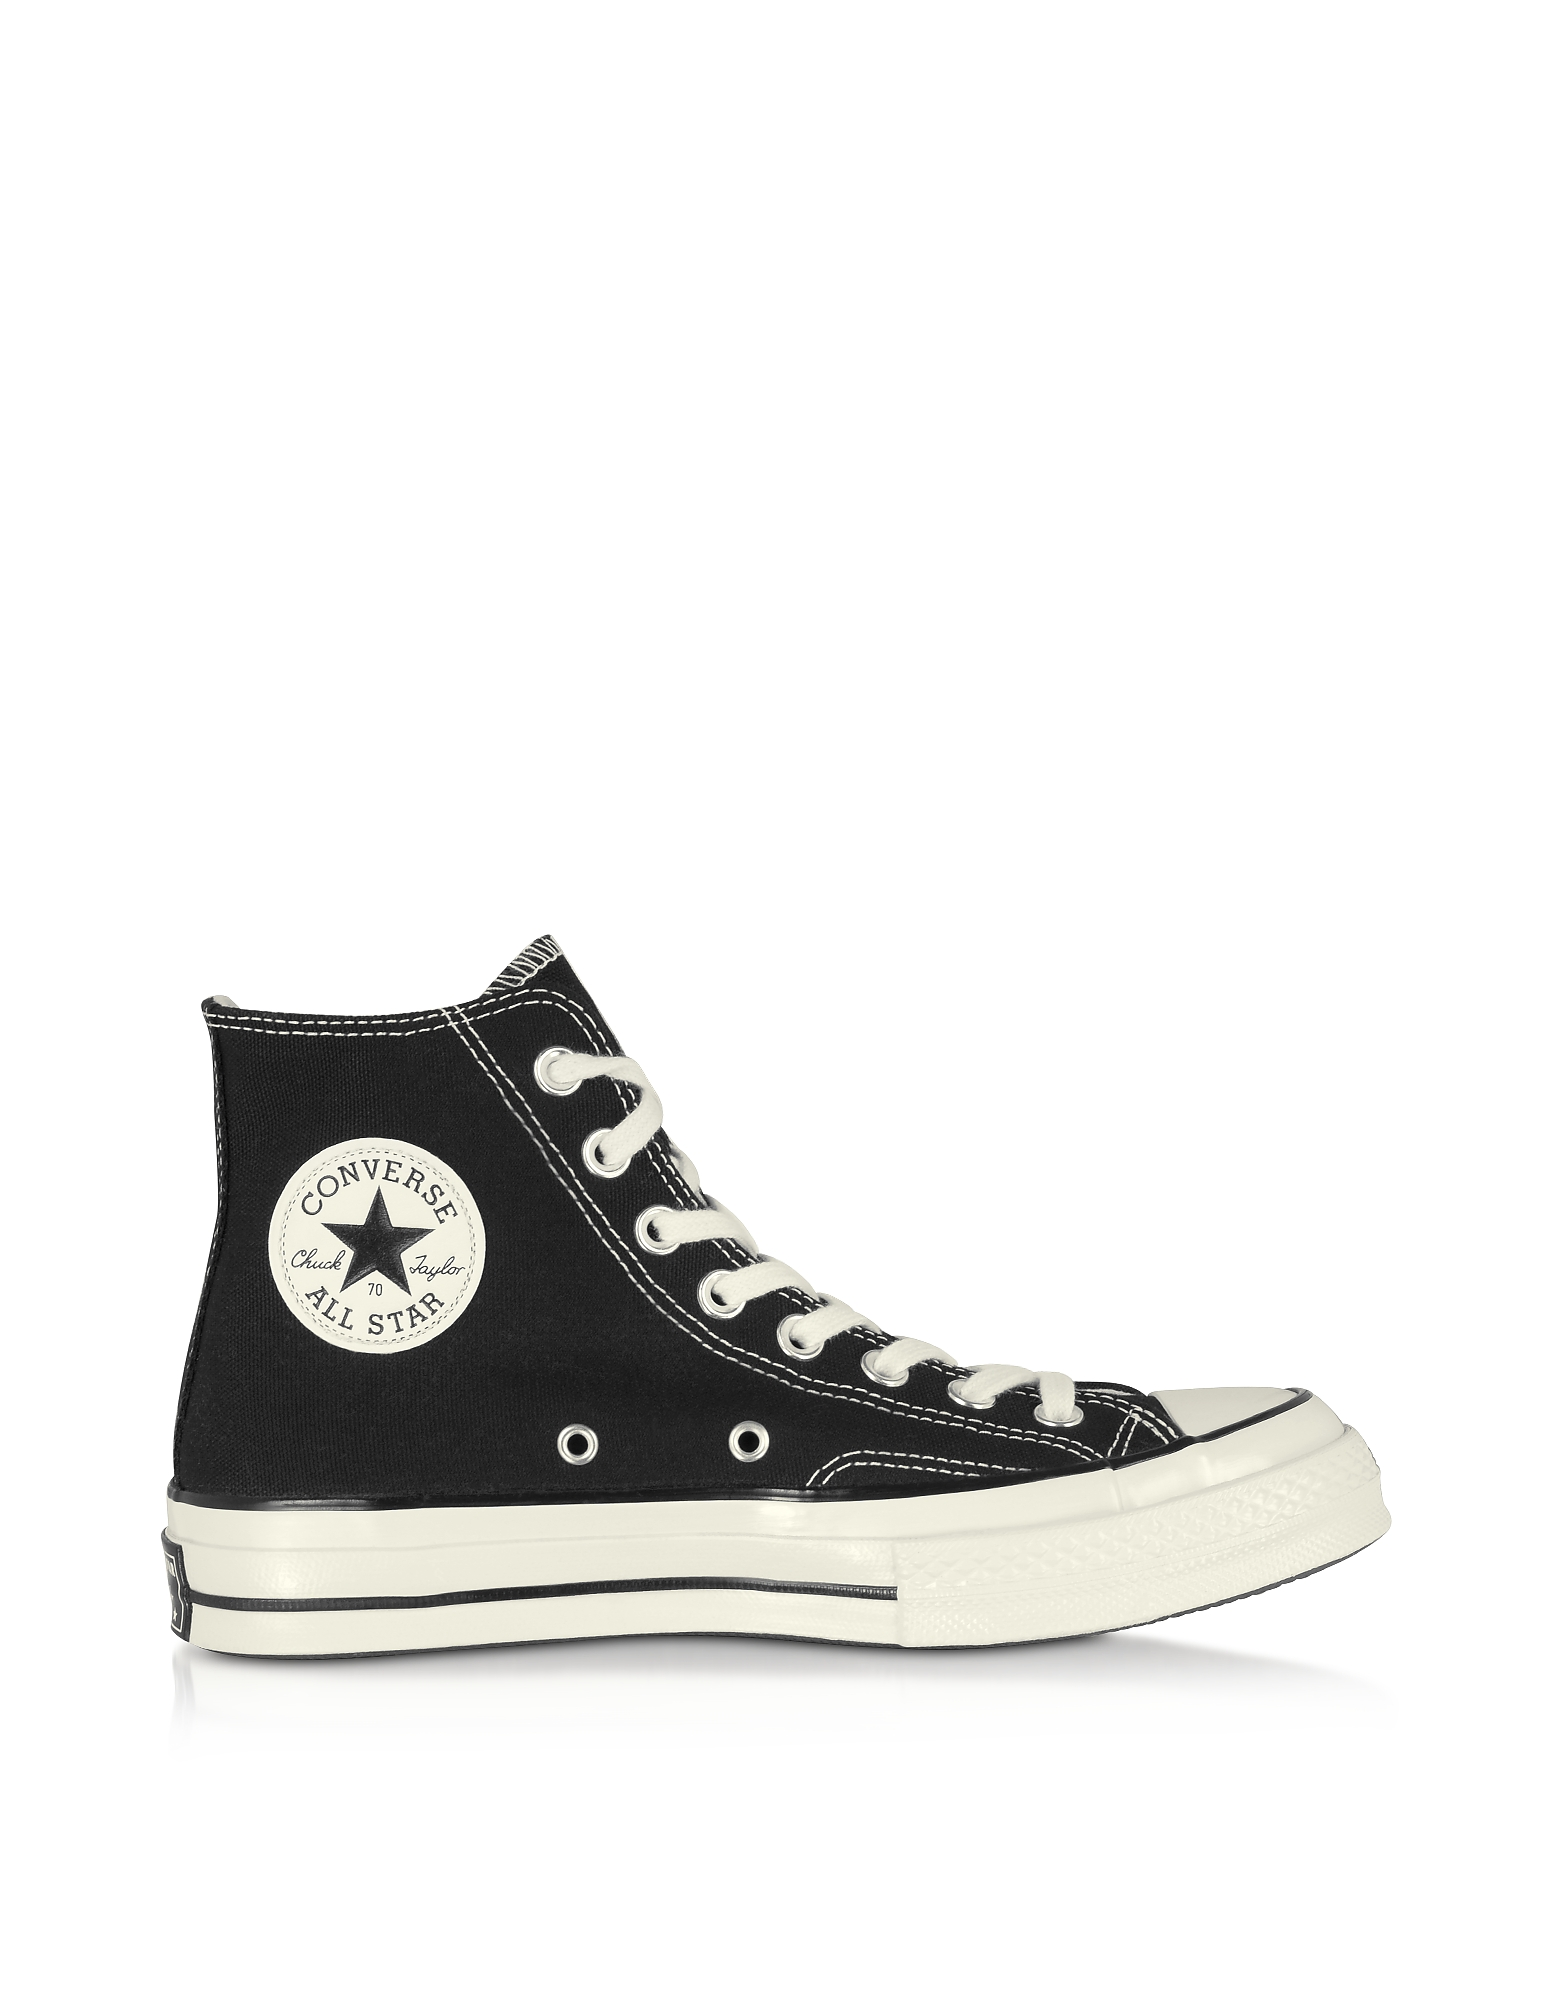 Converse Limited Edition Designer Shoes, Chuck 70 High Top Black Canvas Sneakers